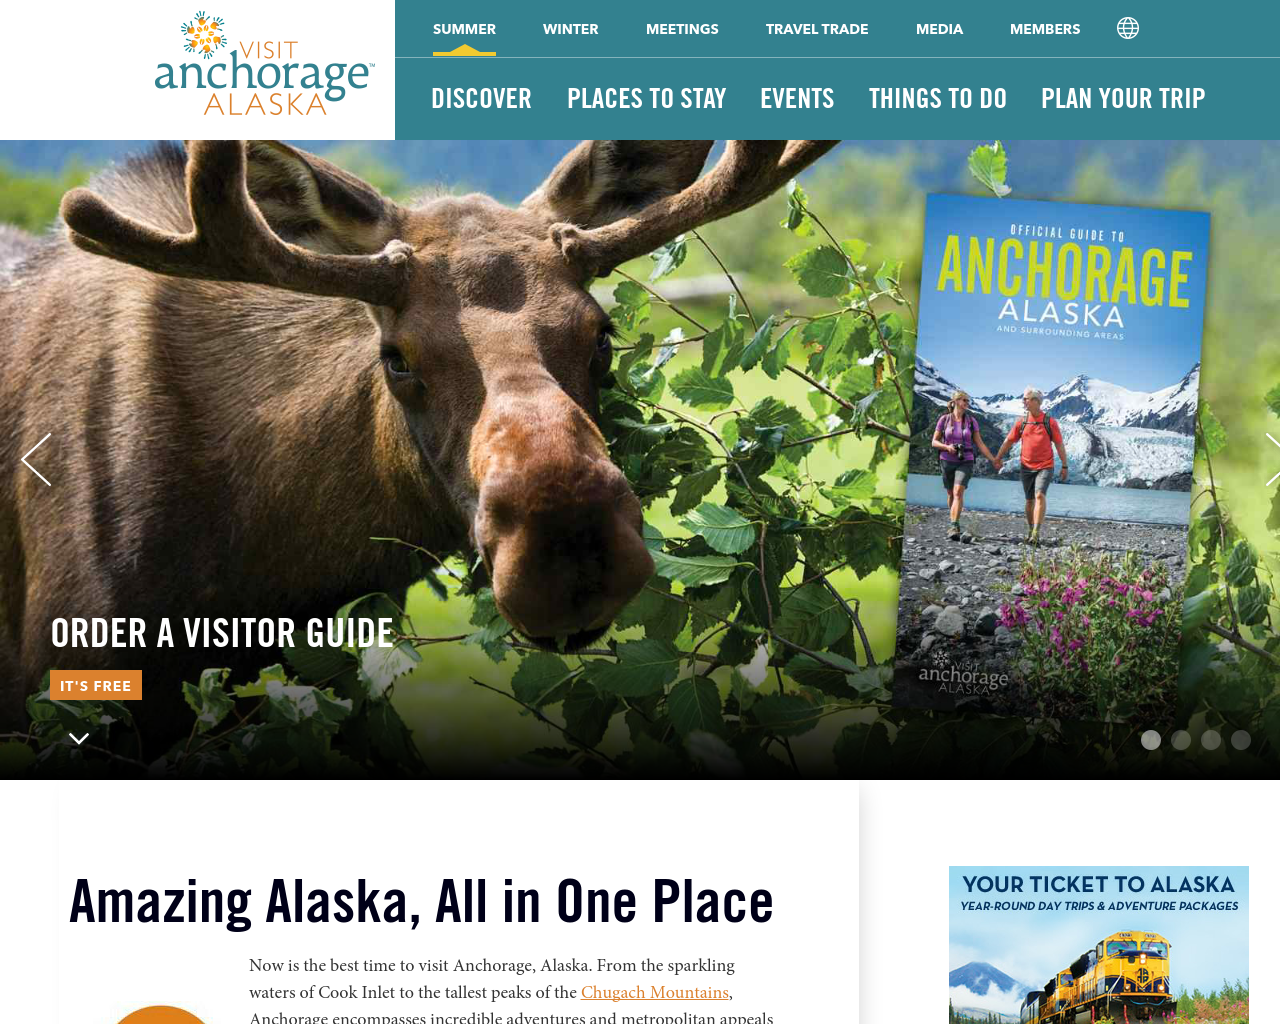 Anchorage-Advertising-Reviews-Pricing